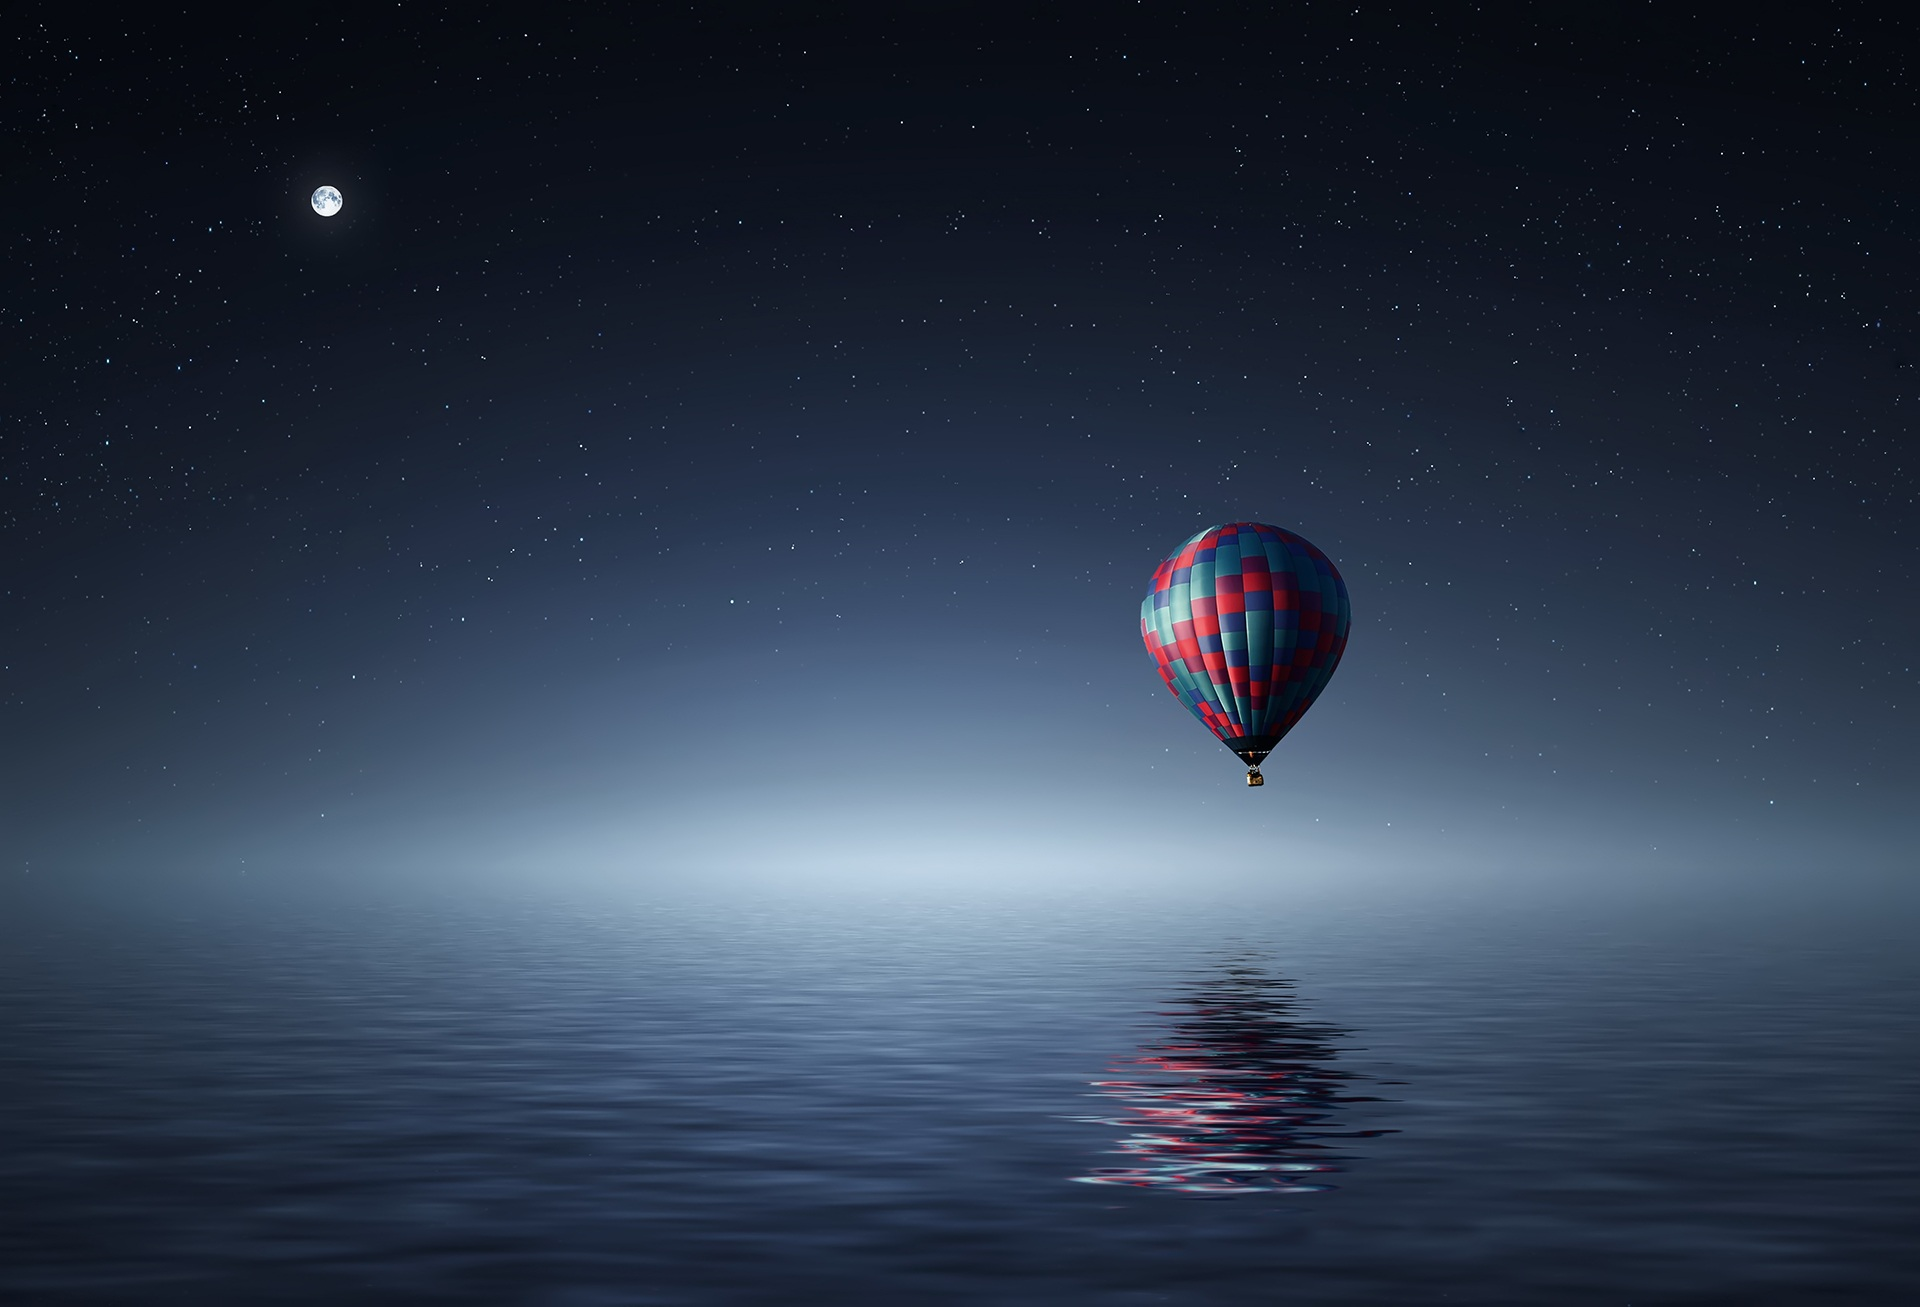 A digital illustration of a hot air balloon floating over water at night from Pixabay